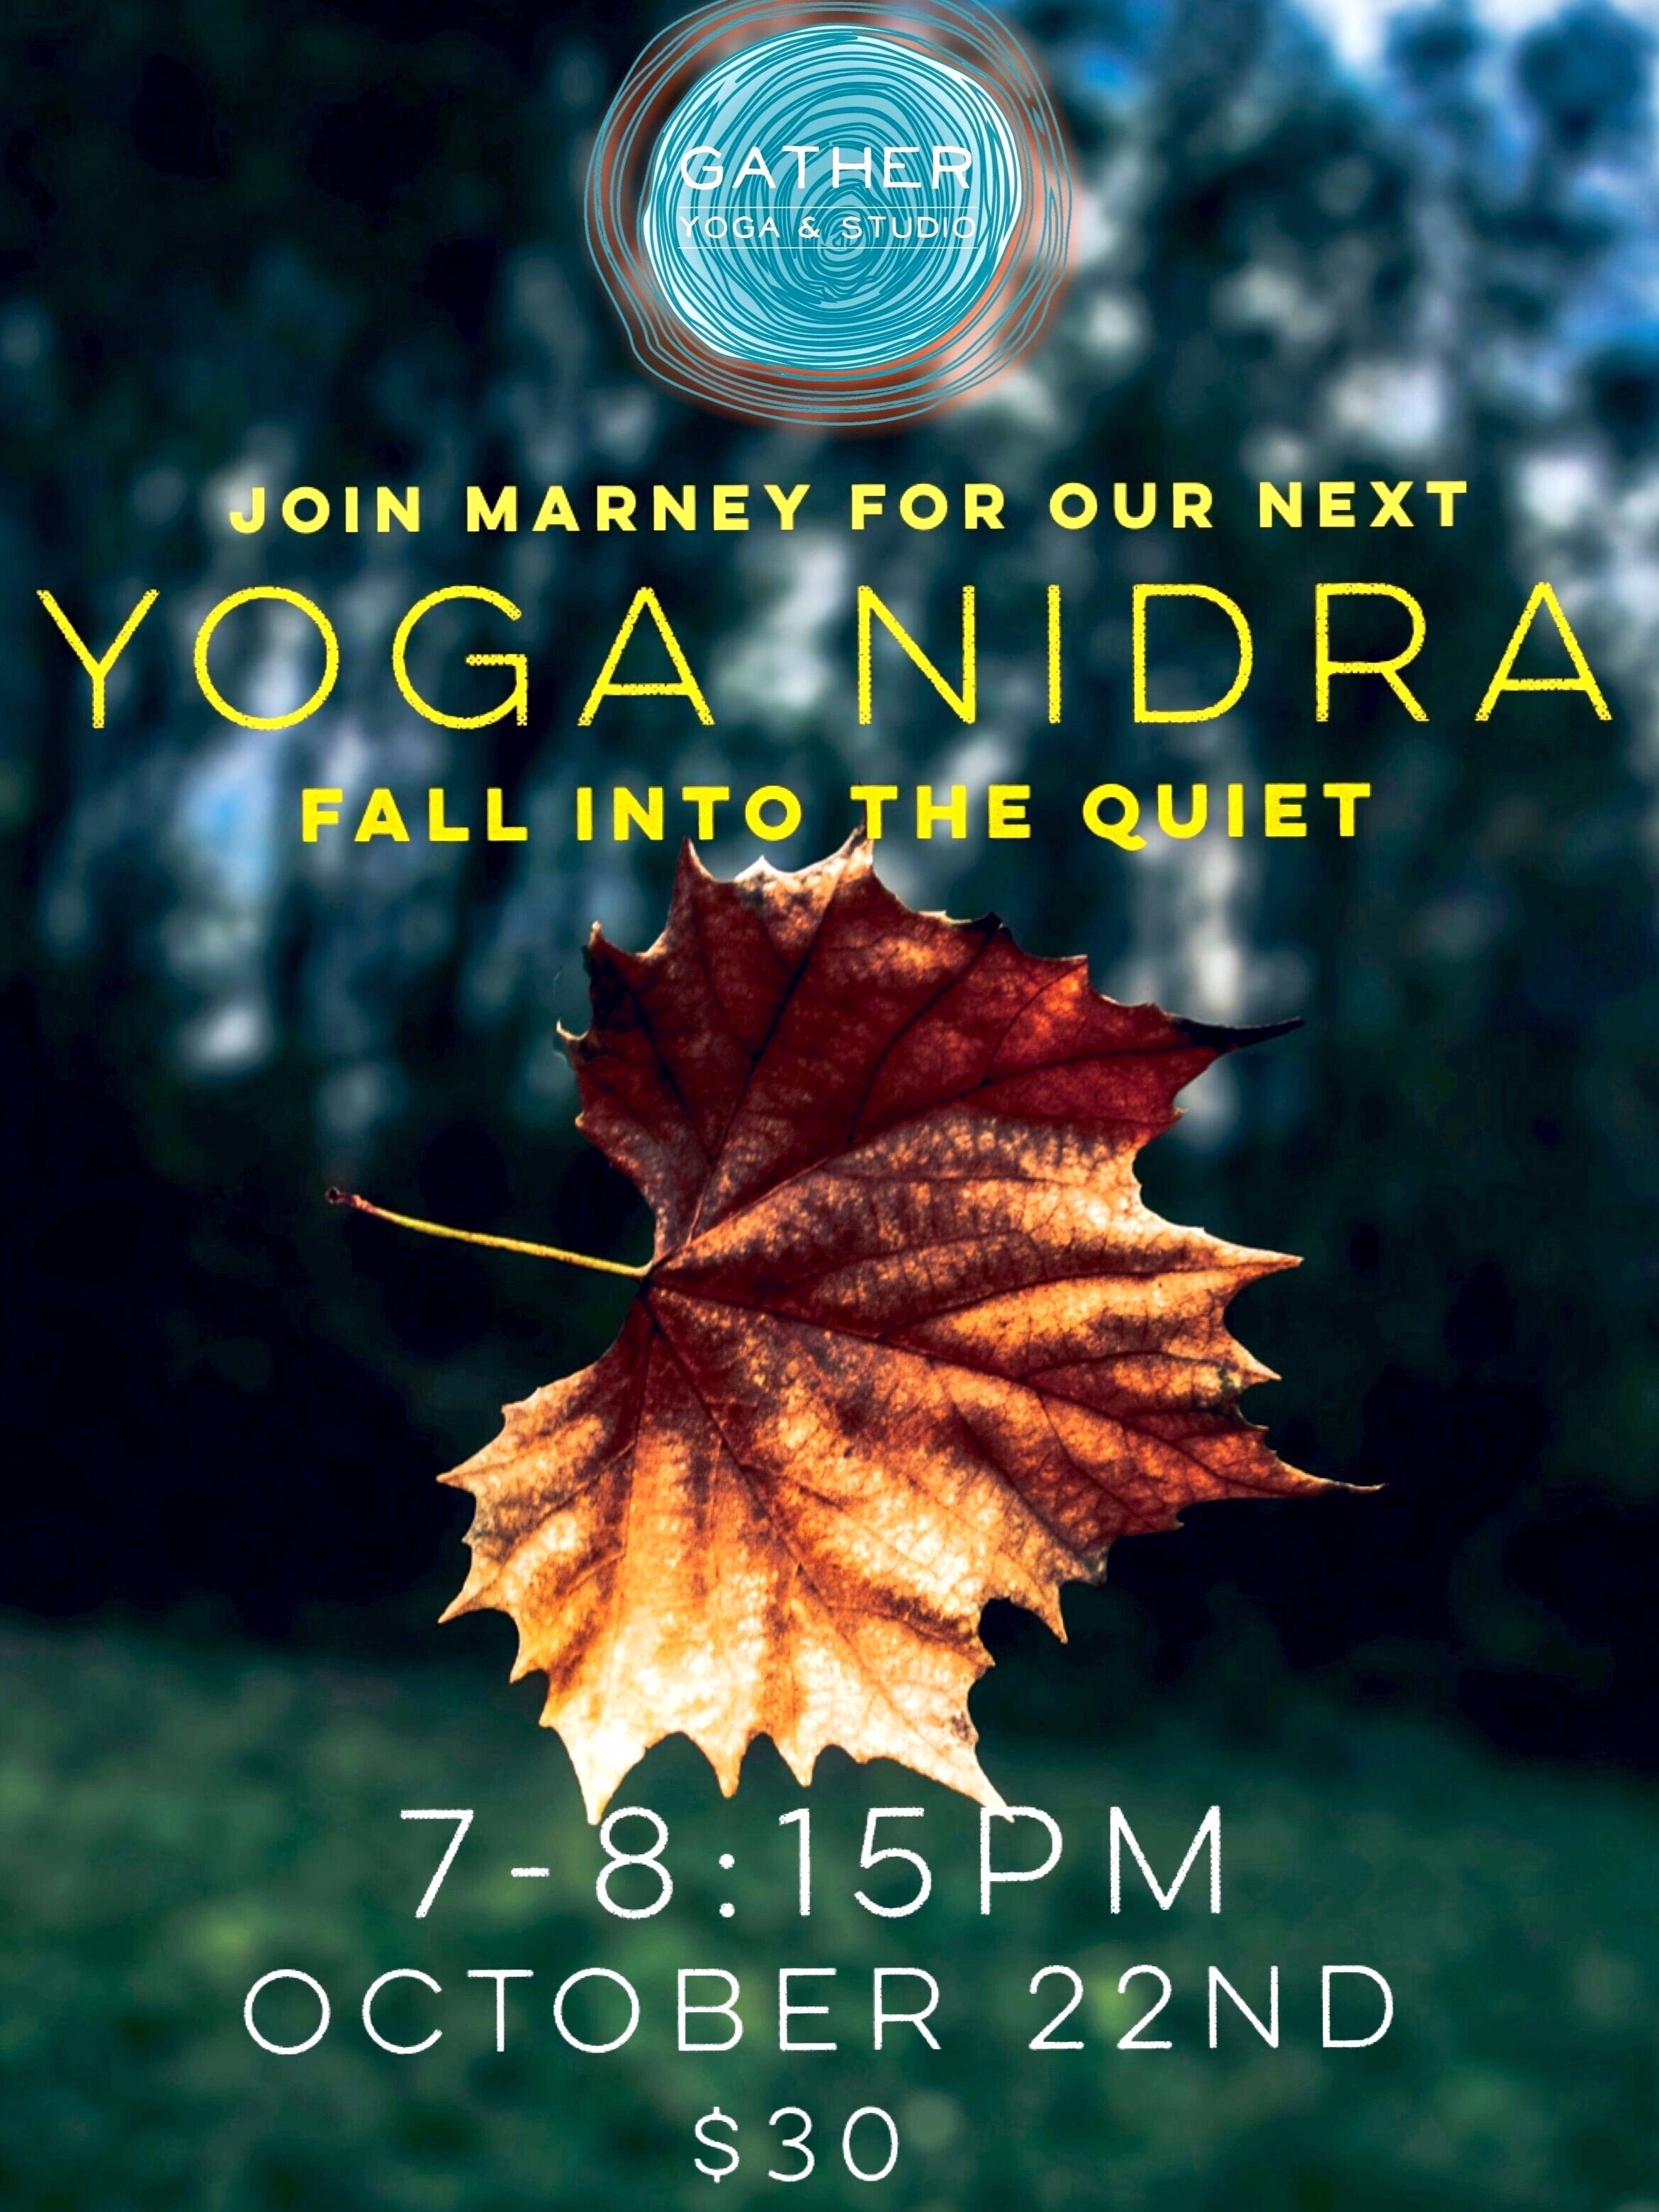 October 22nd Yoga Nidra